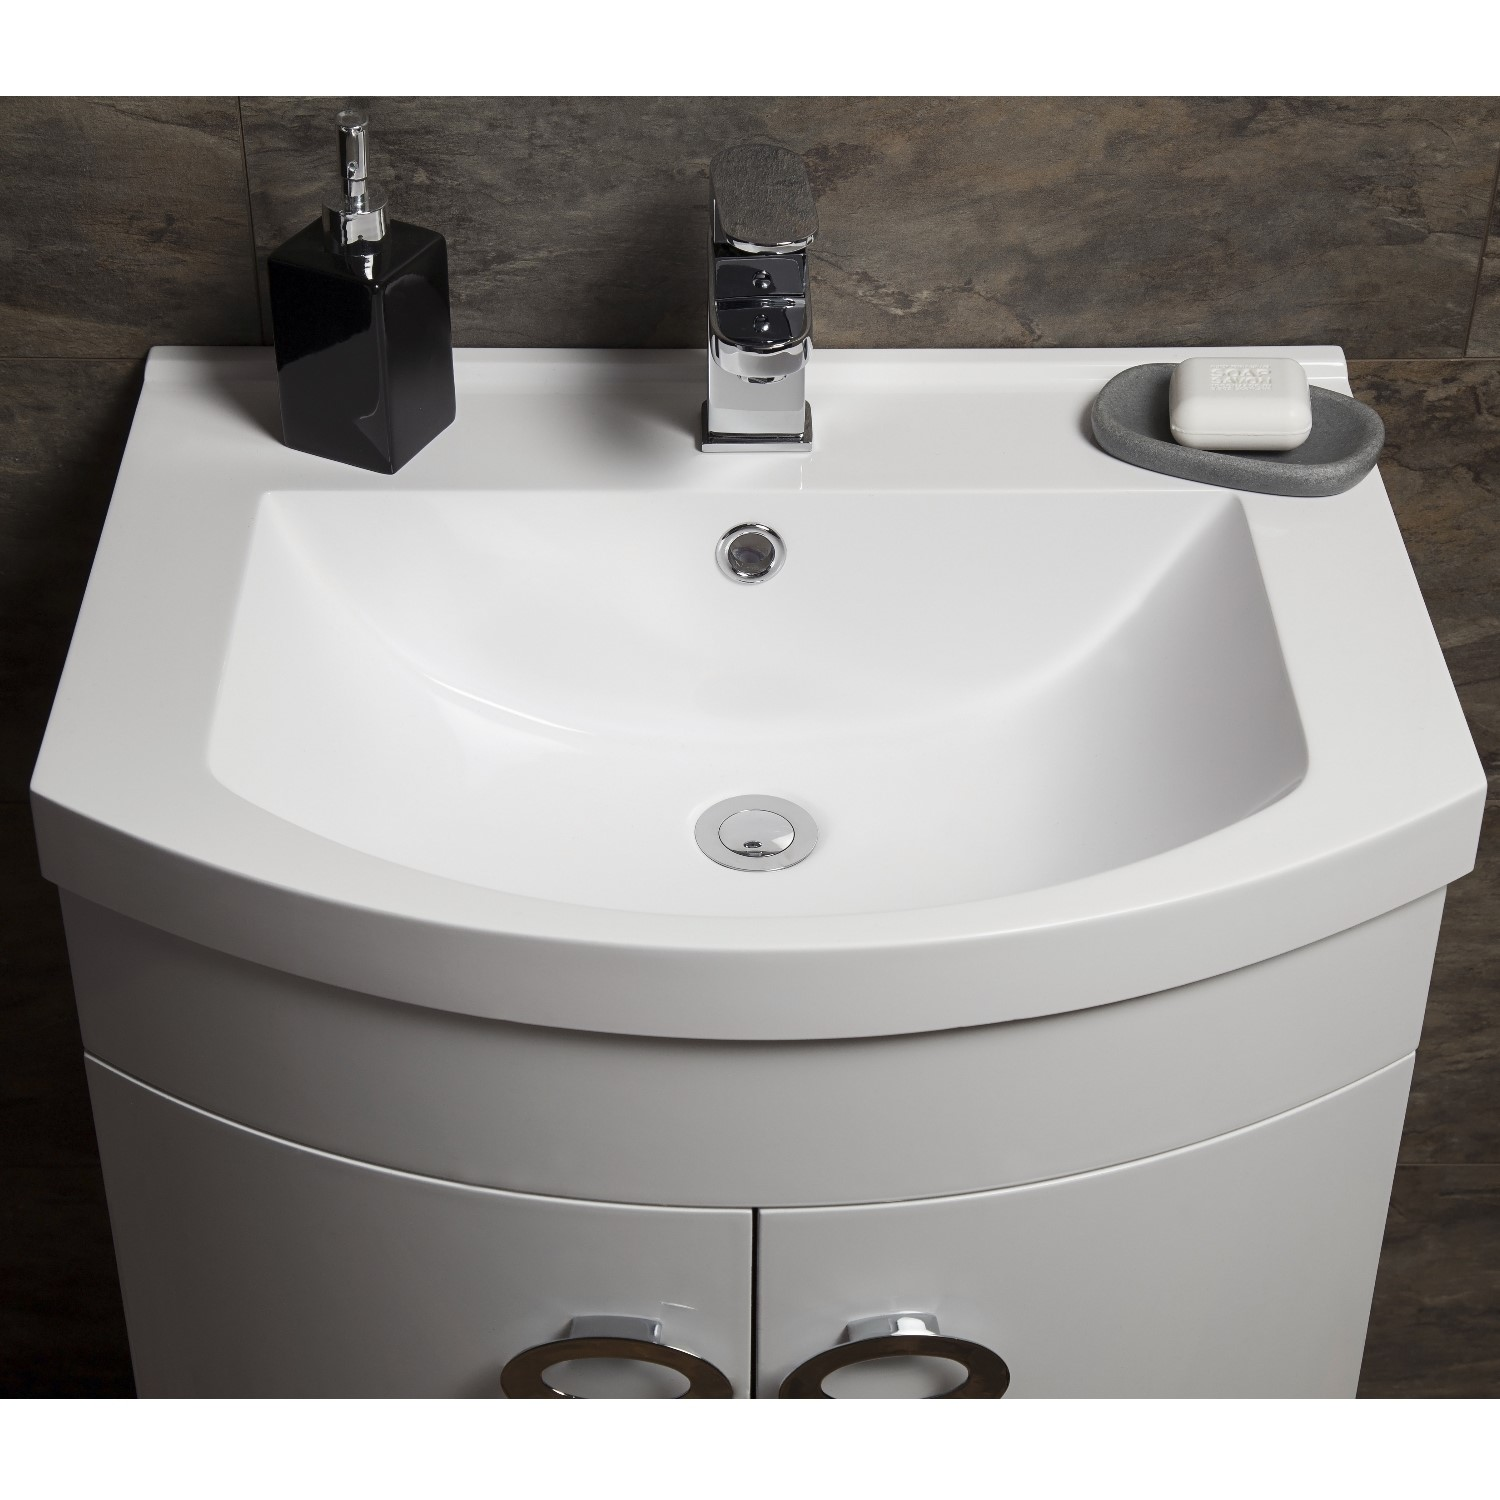 new concept ded70 86292 Curved White Bathroom Vanity Unit & Basin - W600mm